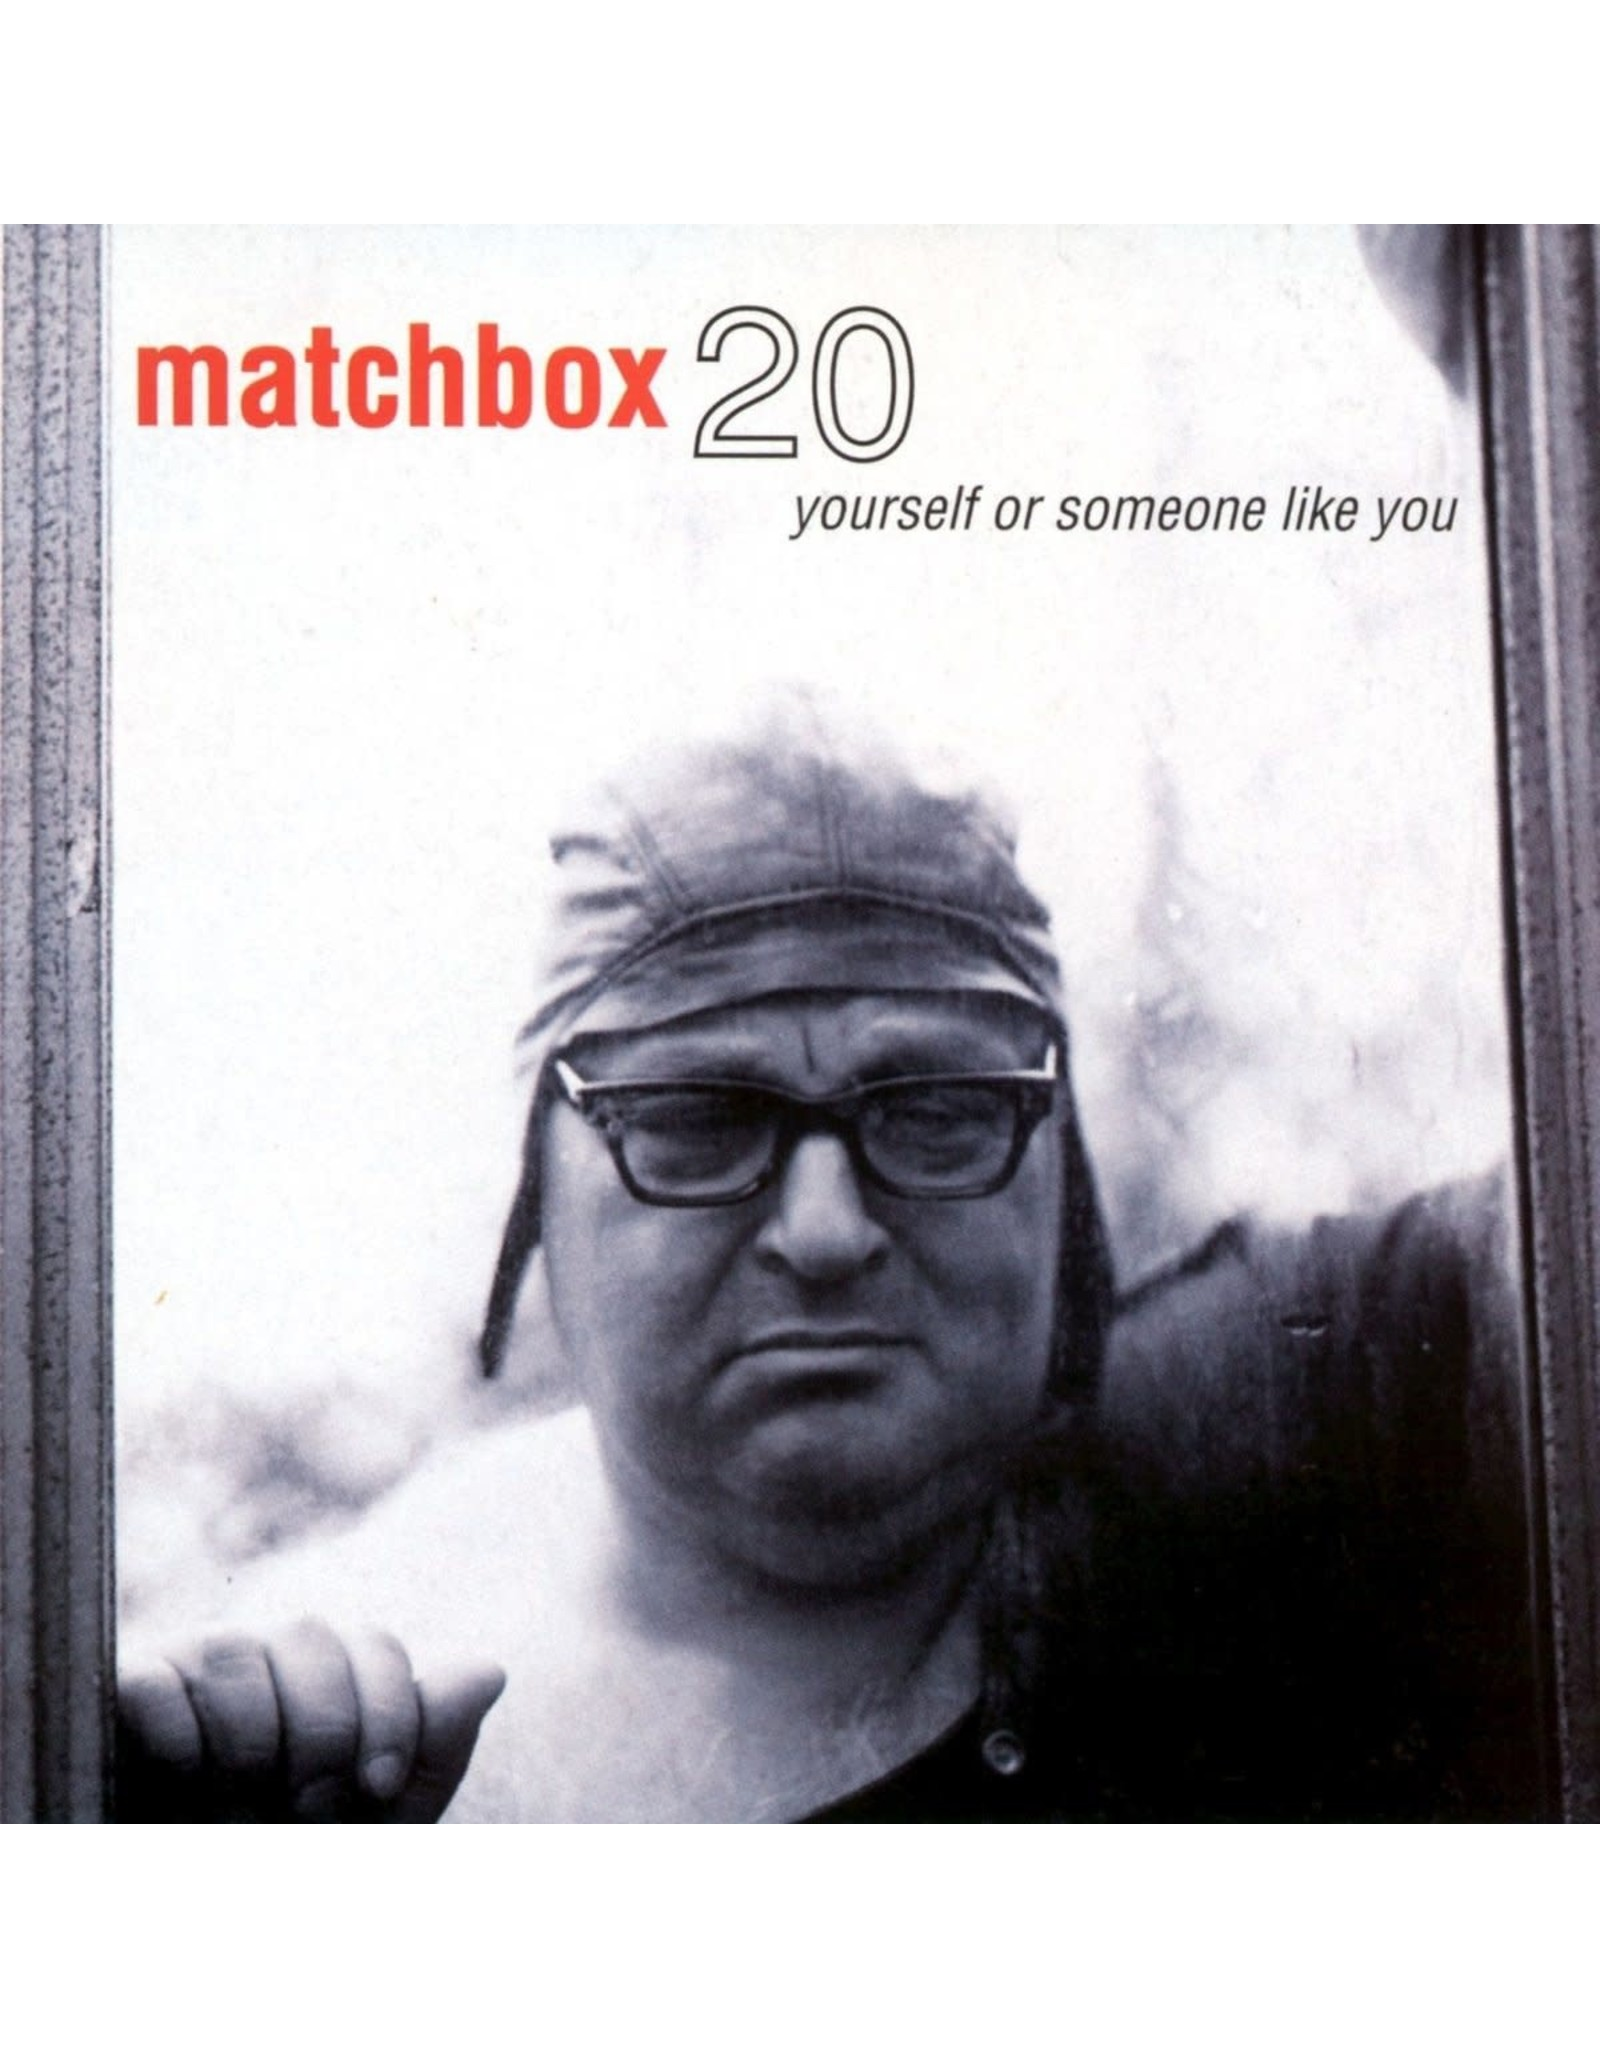 Matchbox 20 - Yourself Or Someone Like You (Red Vinyl)